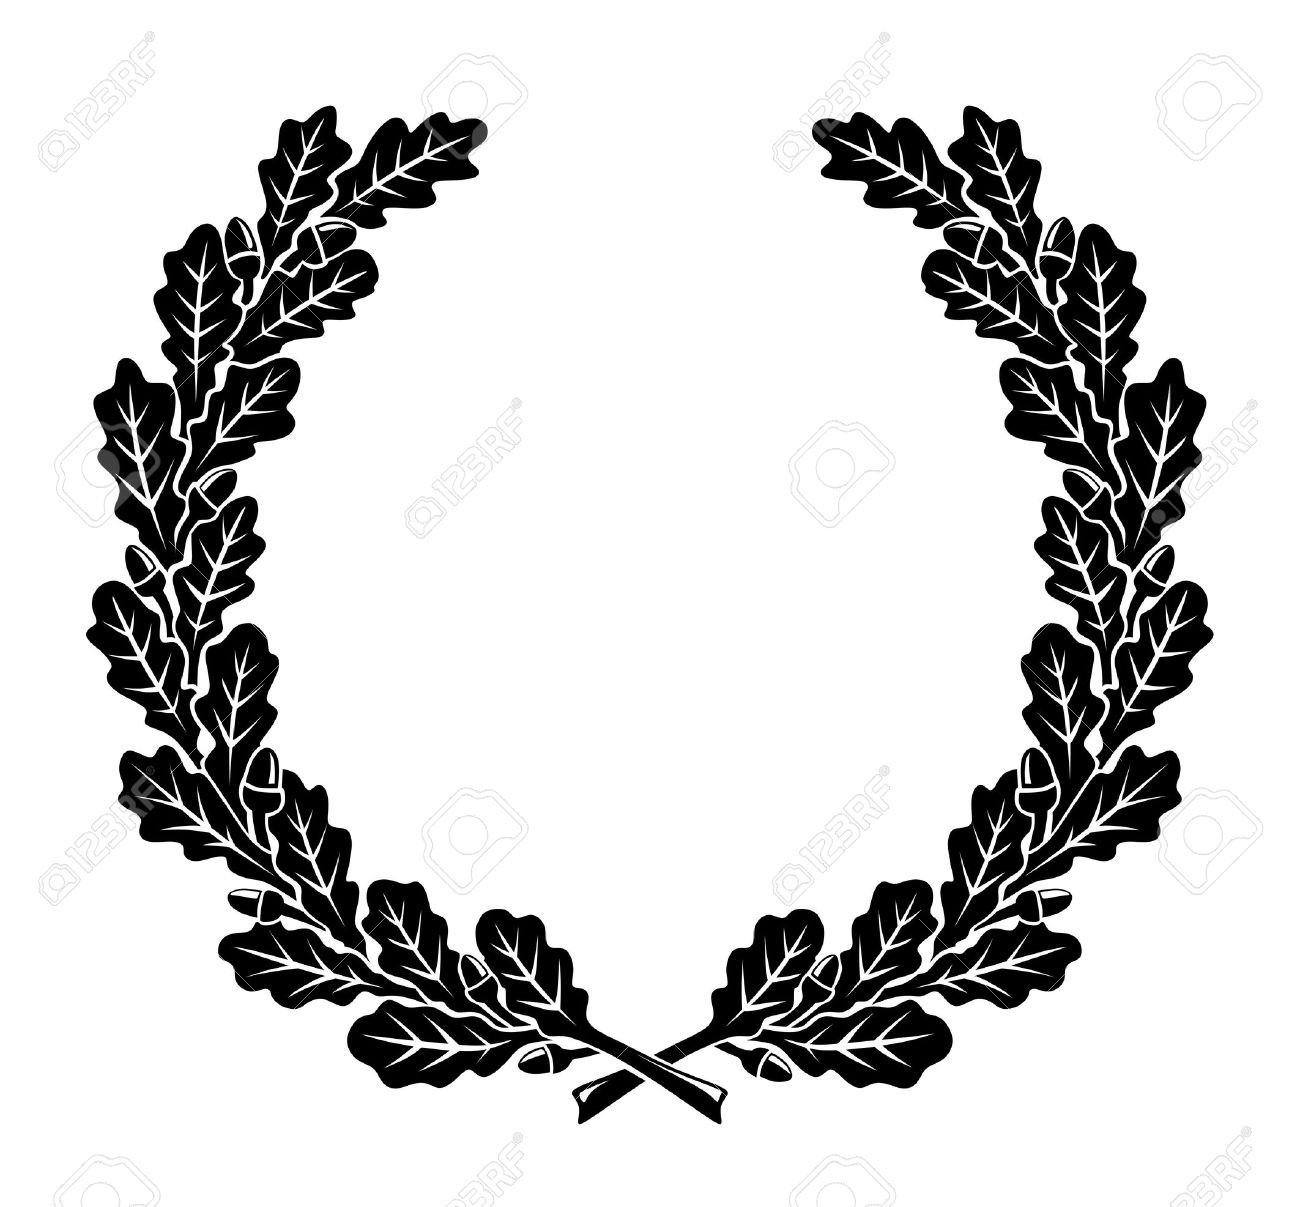 a simplified wreath made of oak leaves royalty free cliparts rh 123rf com oak leaf wreath vector oak leaf wreath vector